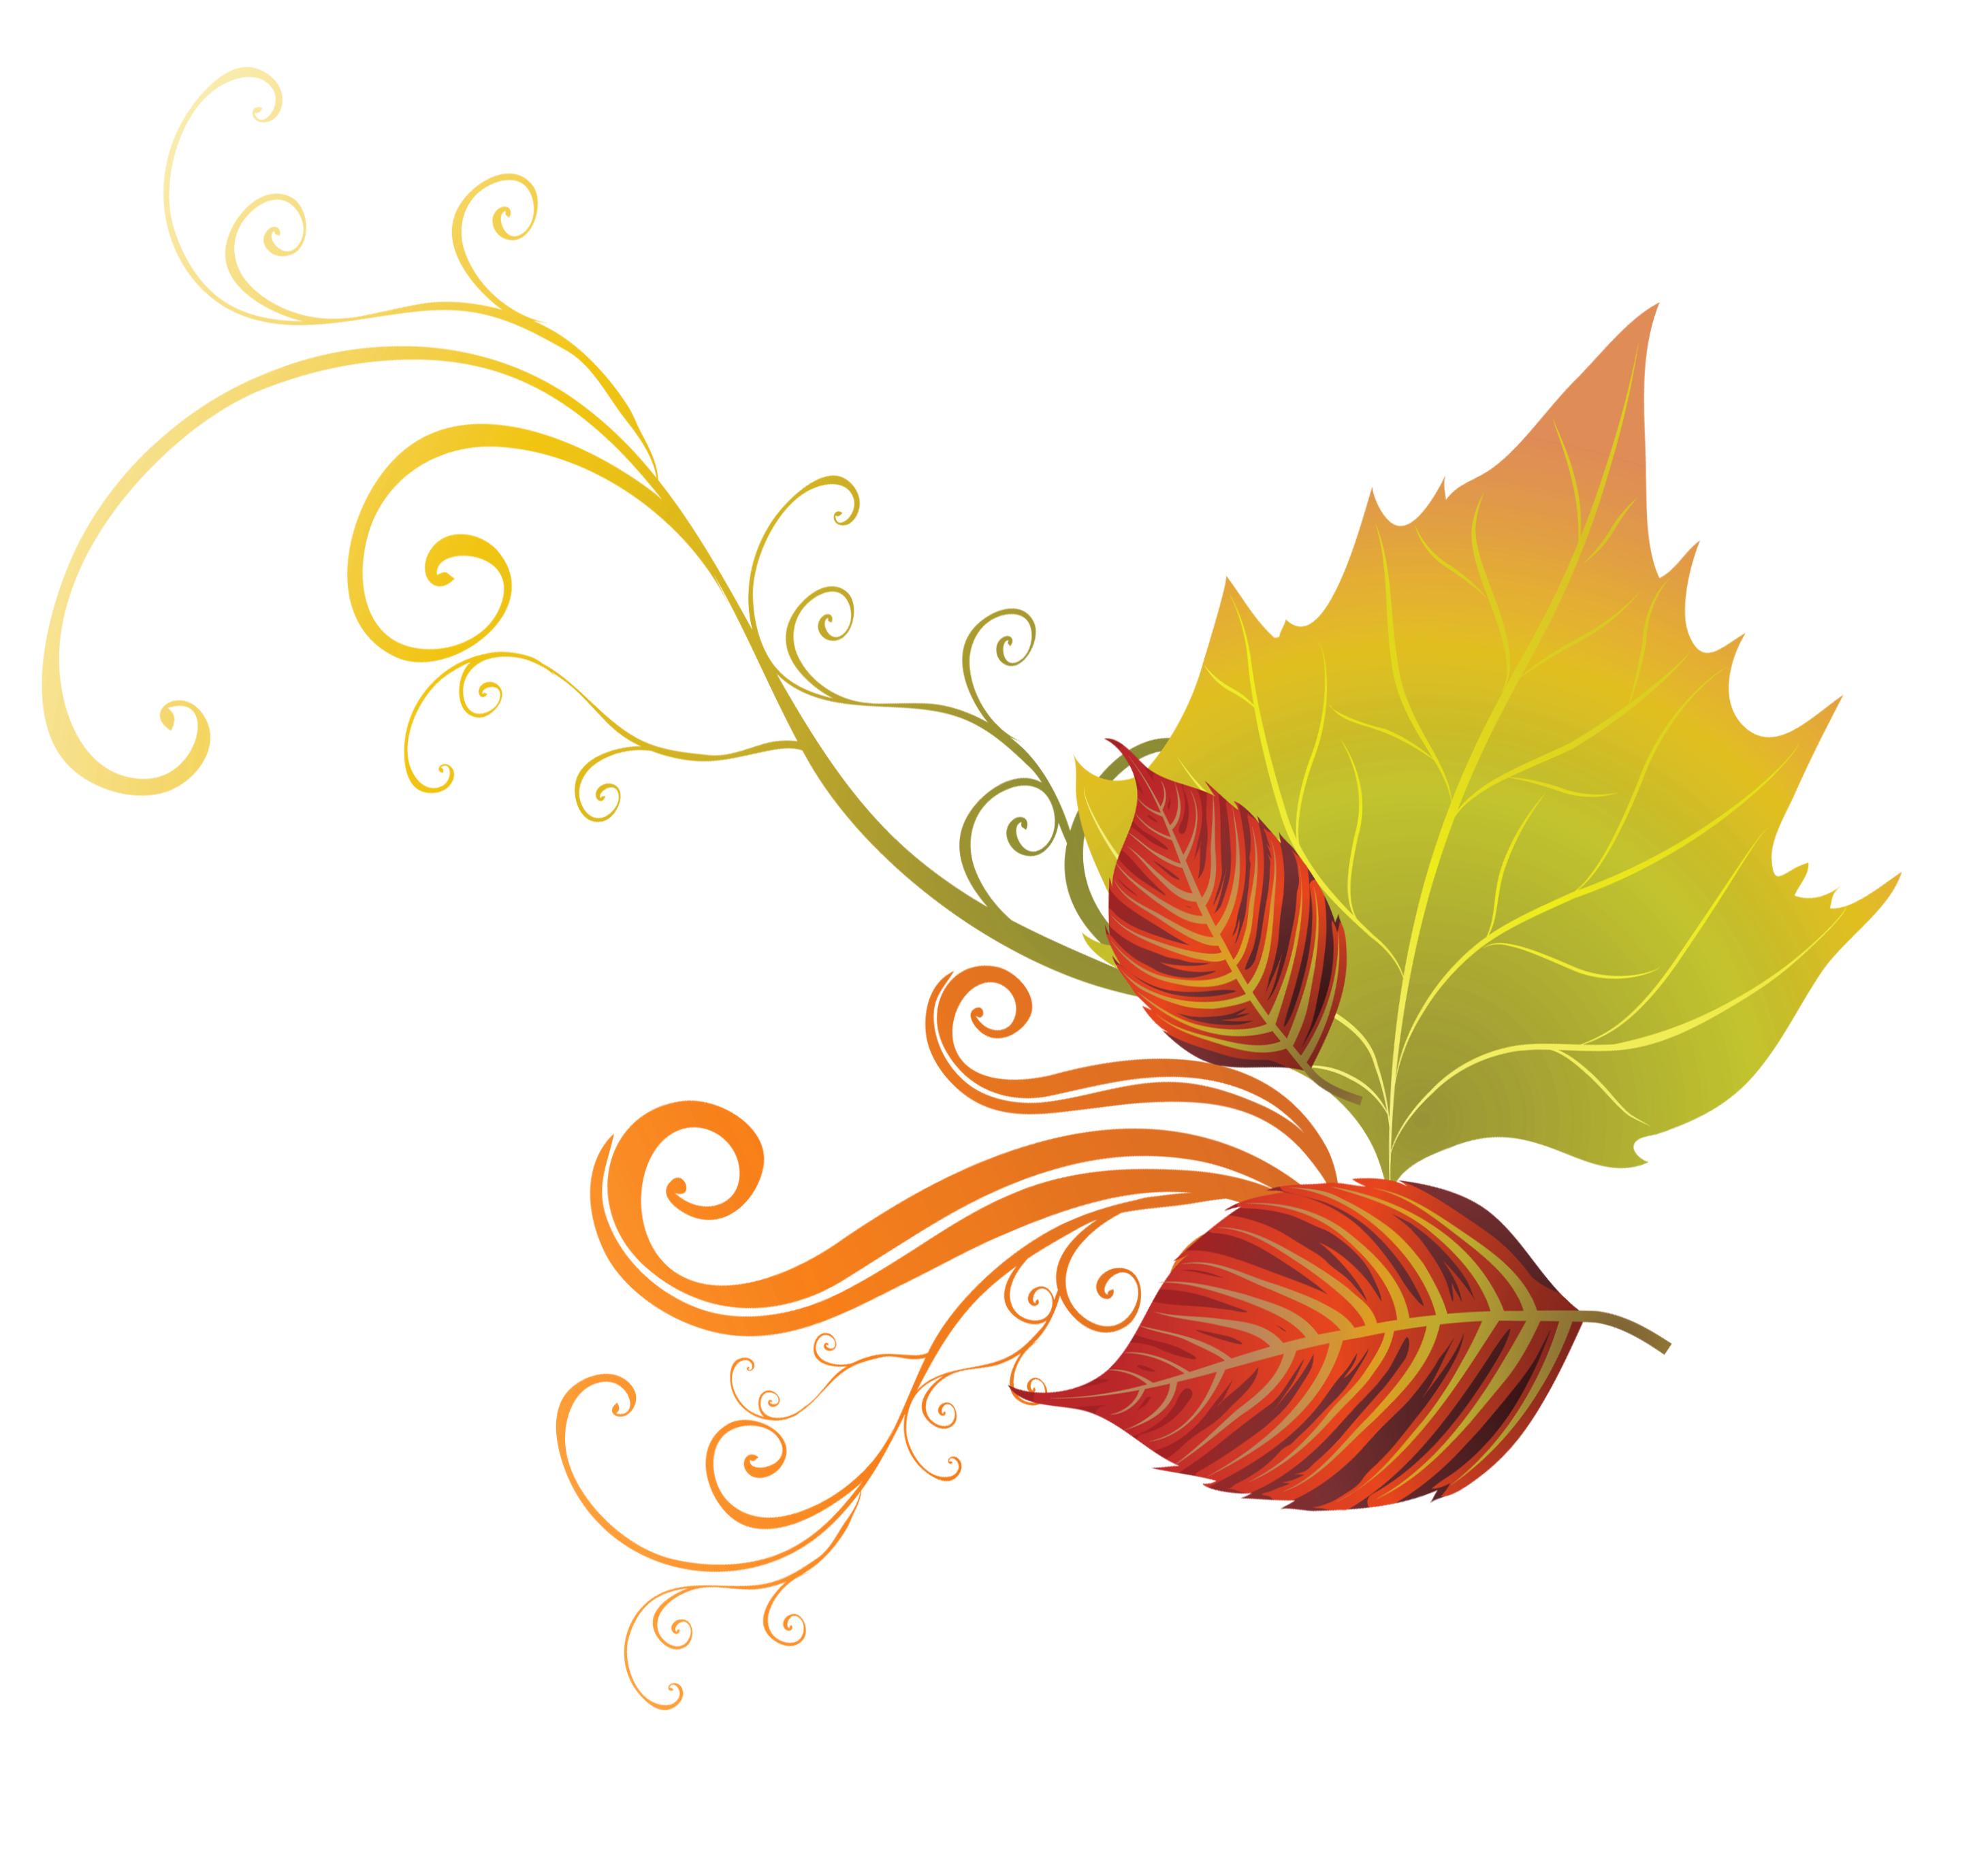 Leaf clipart ornament. Of autumn leaves google